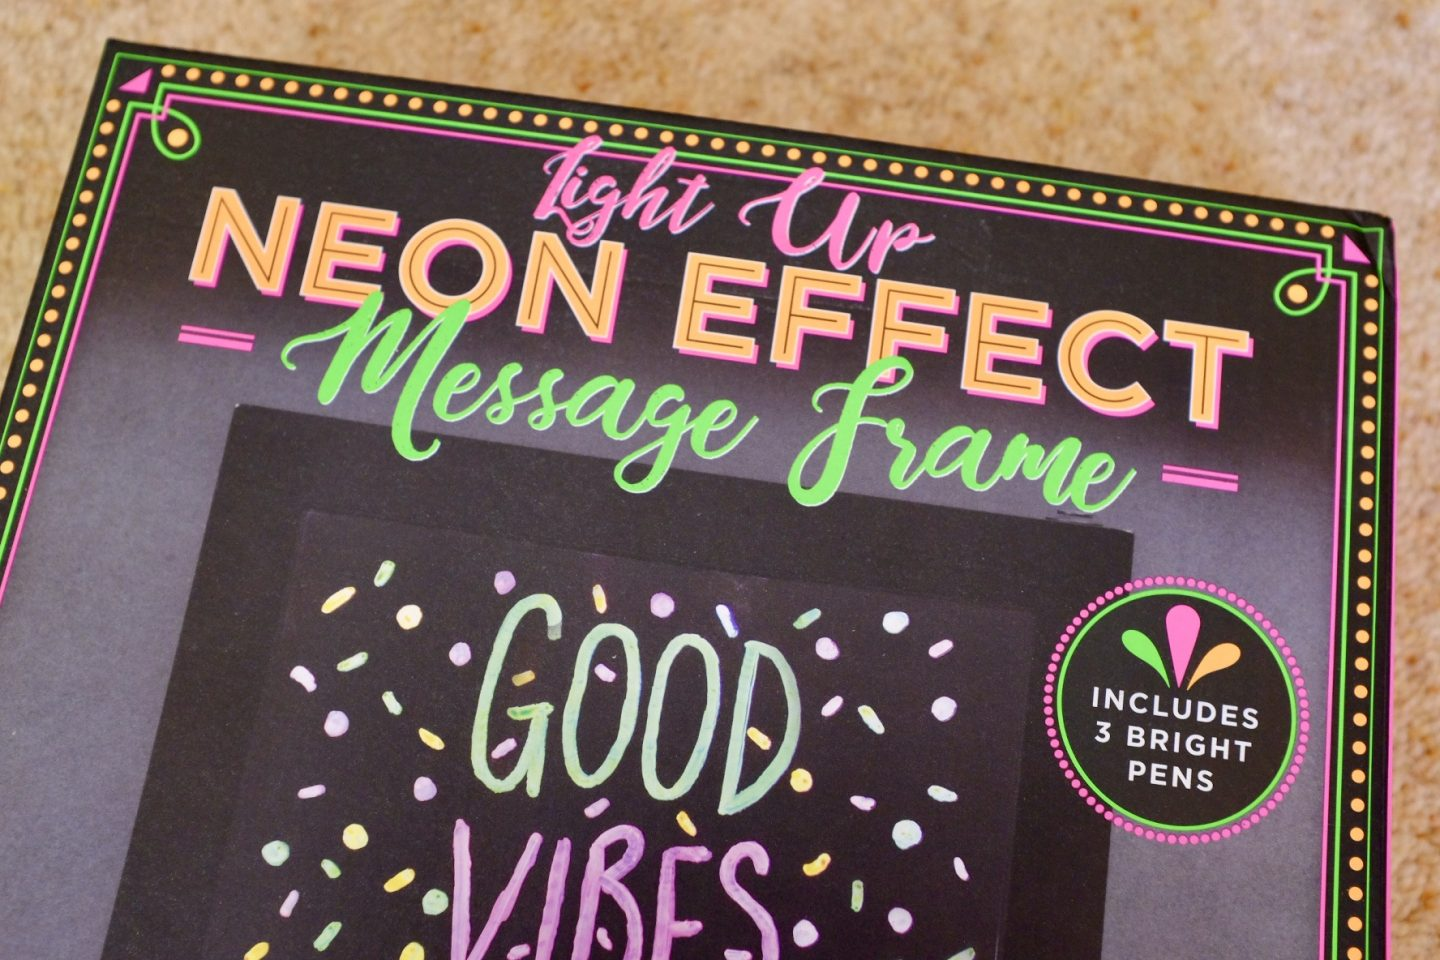 Neon Effect Message Frame in the box